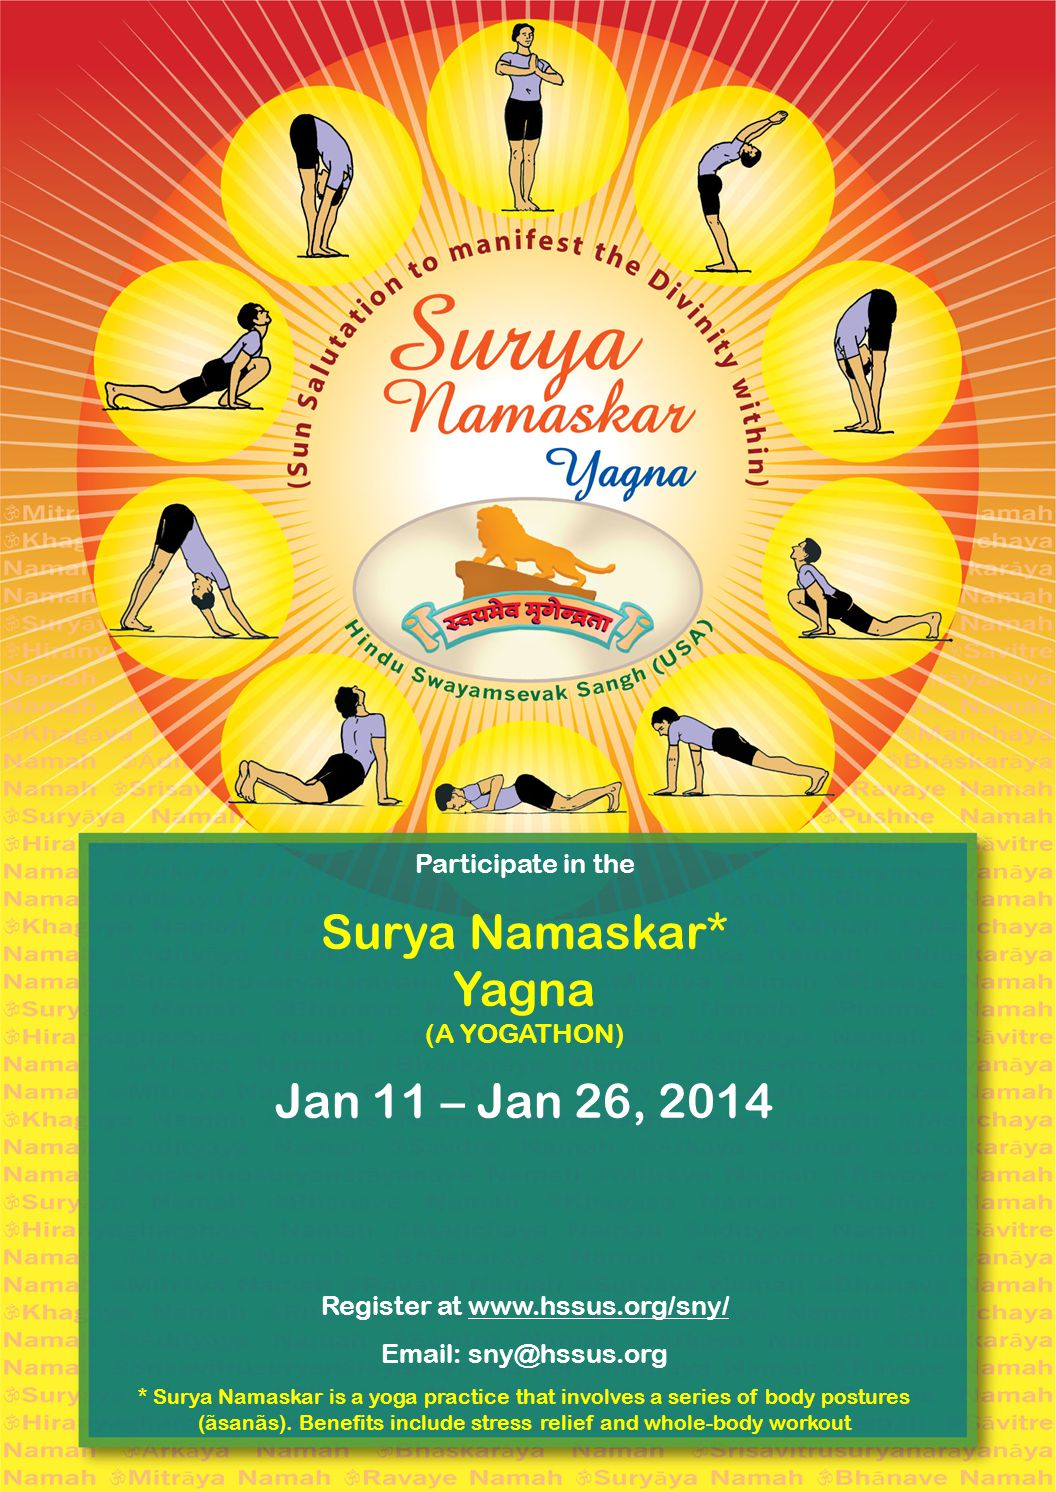 Participate in the Surya Namaskar* Yagna (A YOGATHON) Jan 11 – Jan 26, 2014 Register at www.hssus.org/sny/ Email: sny@hssus.org * Surya Namaskar is a